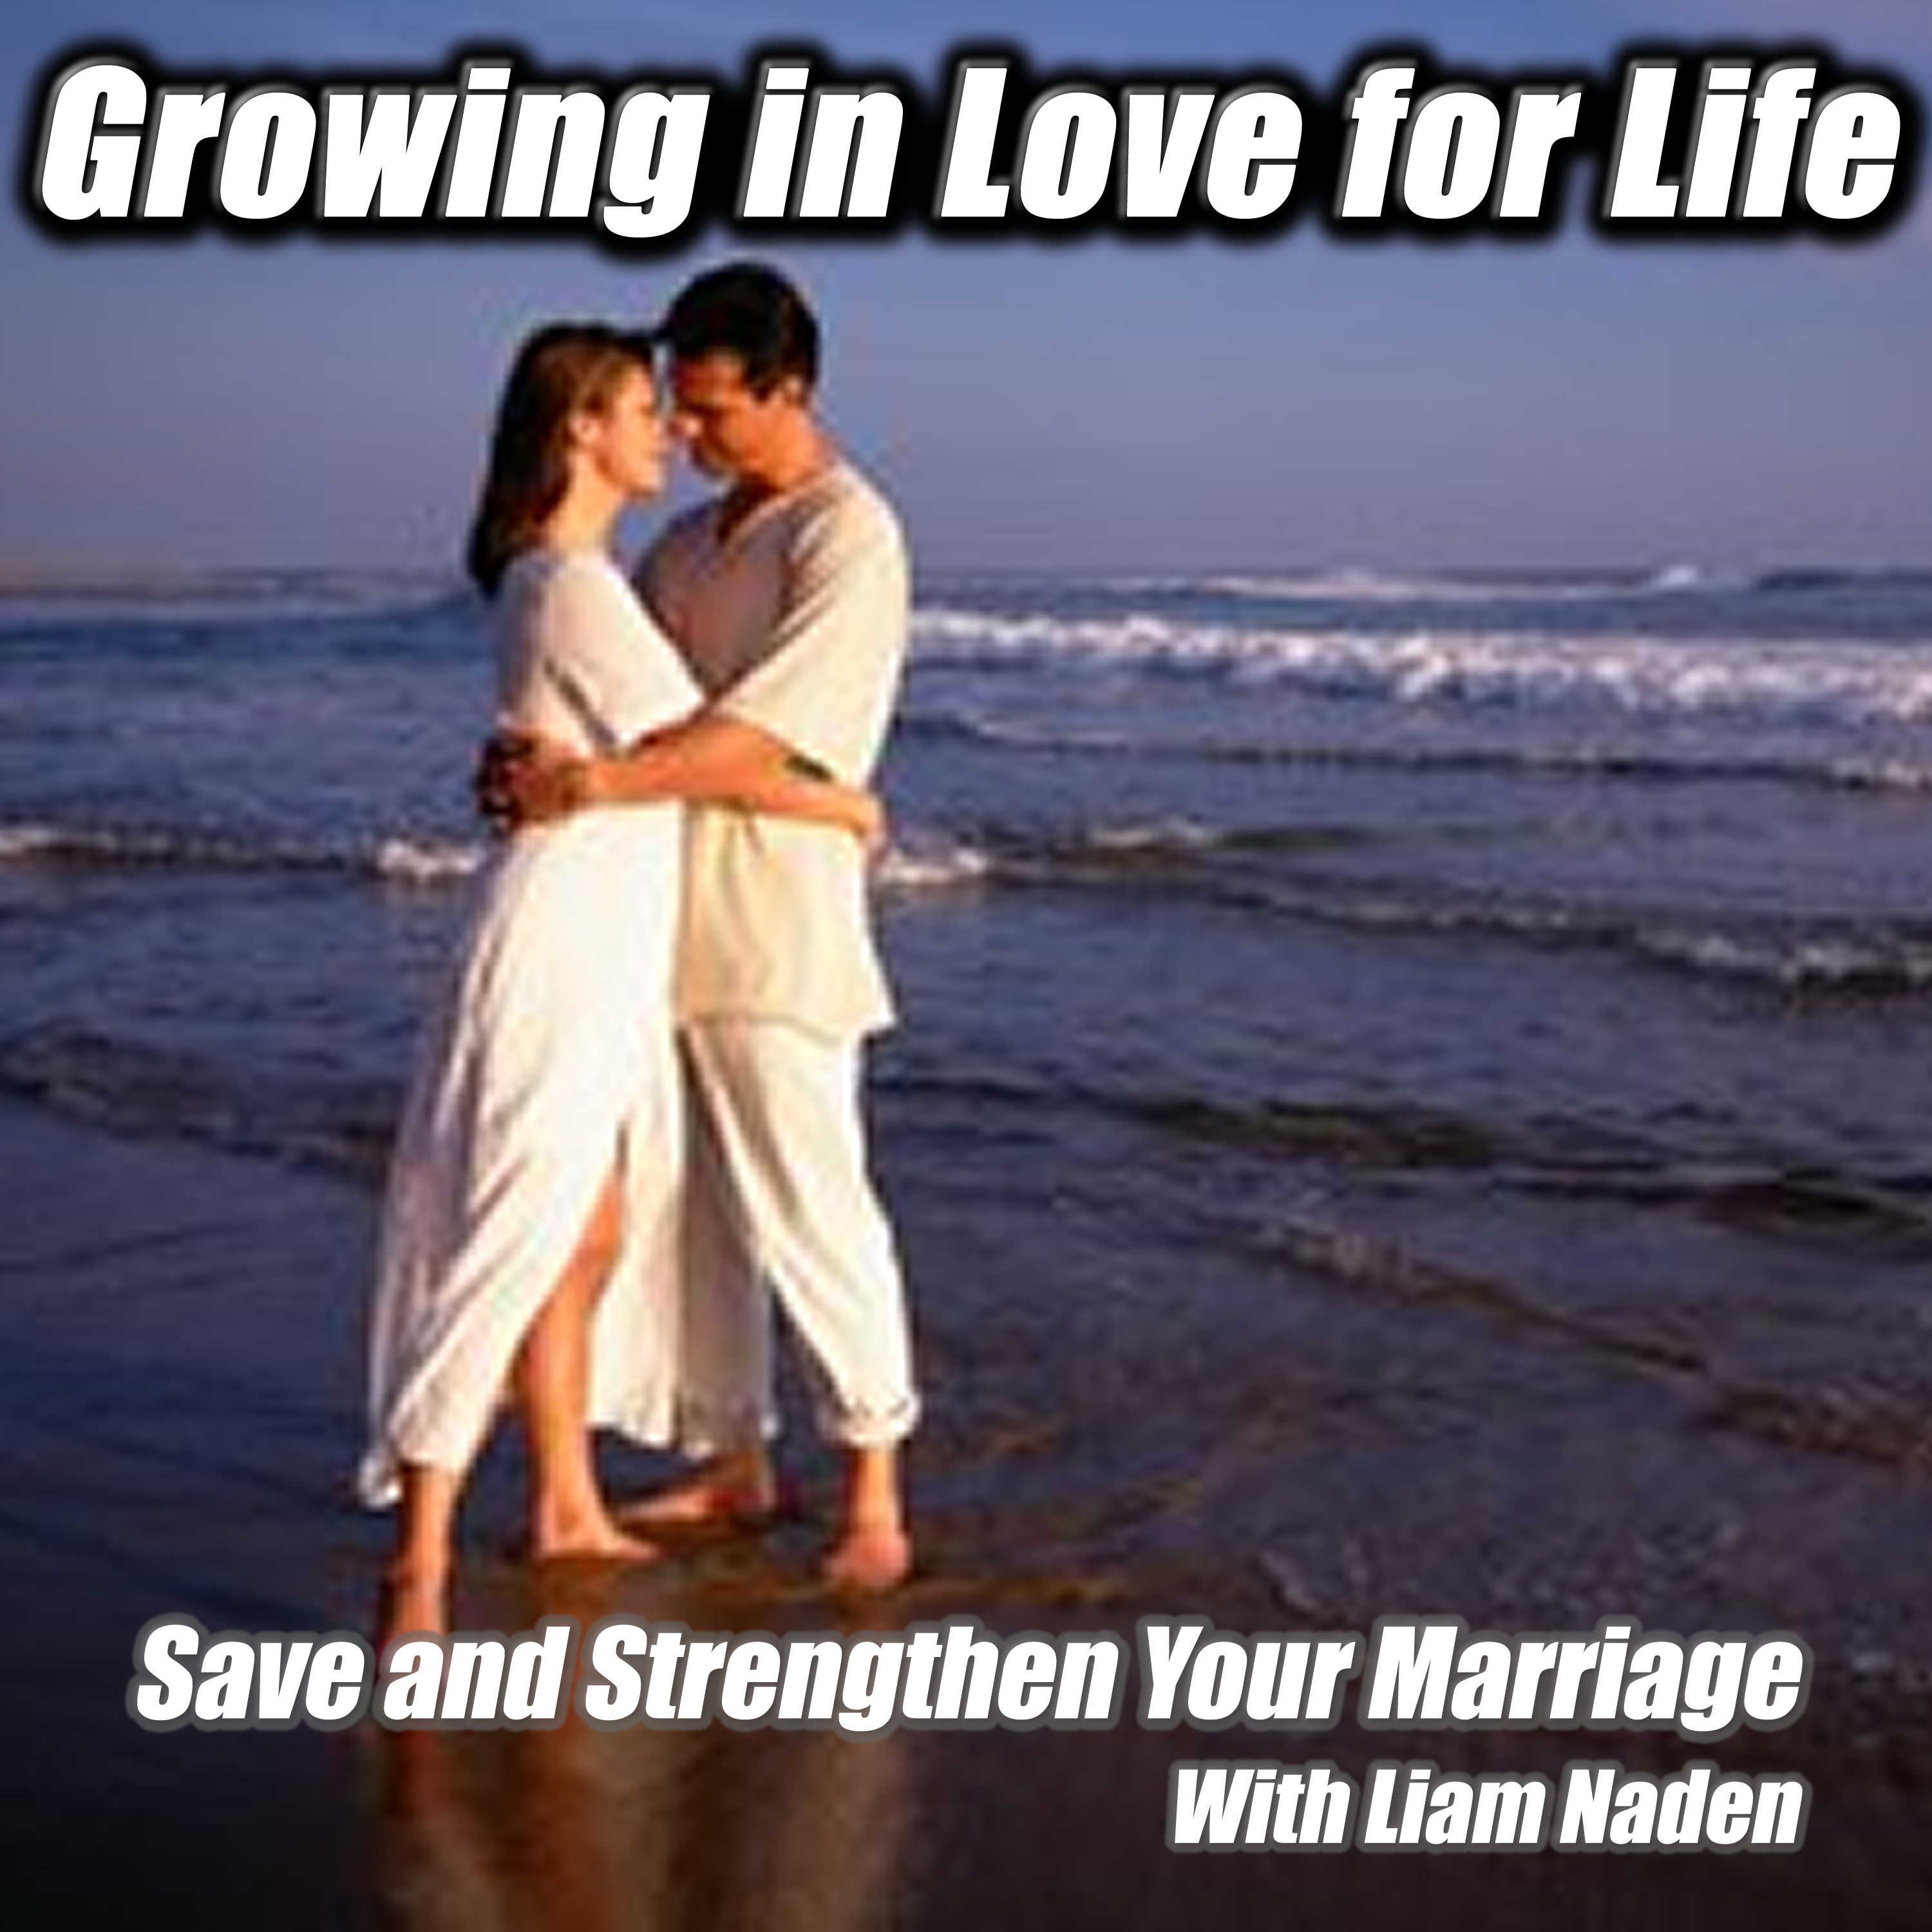 Save and Strengthen Your Marriage